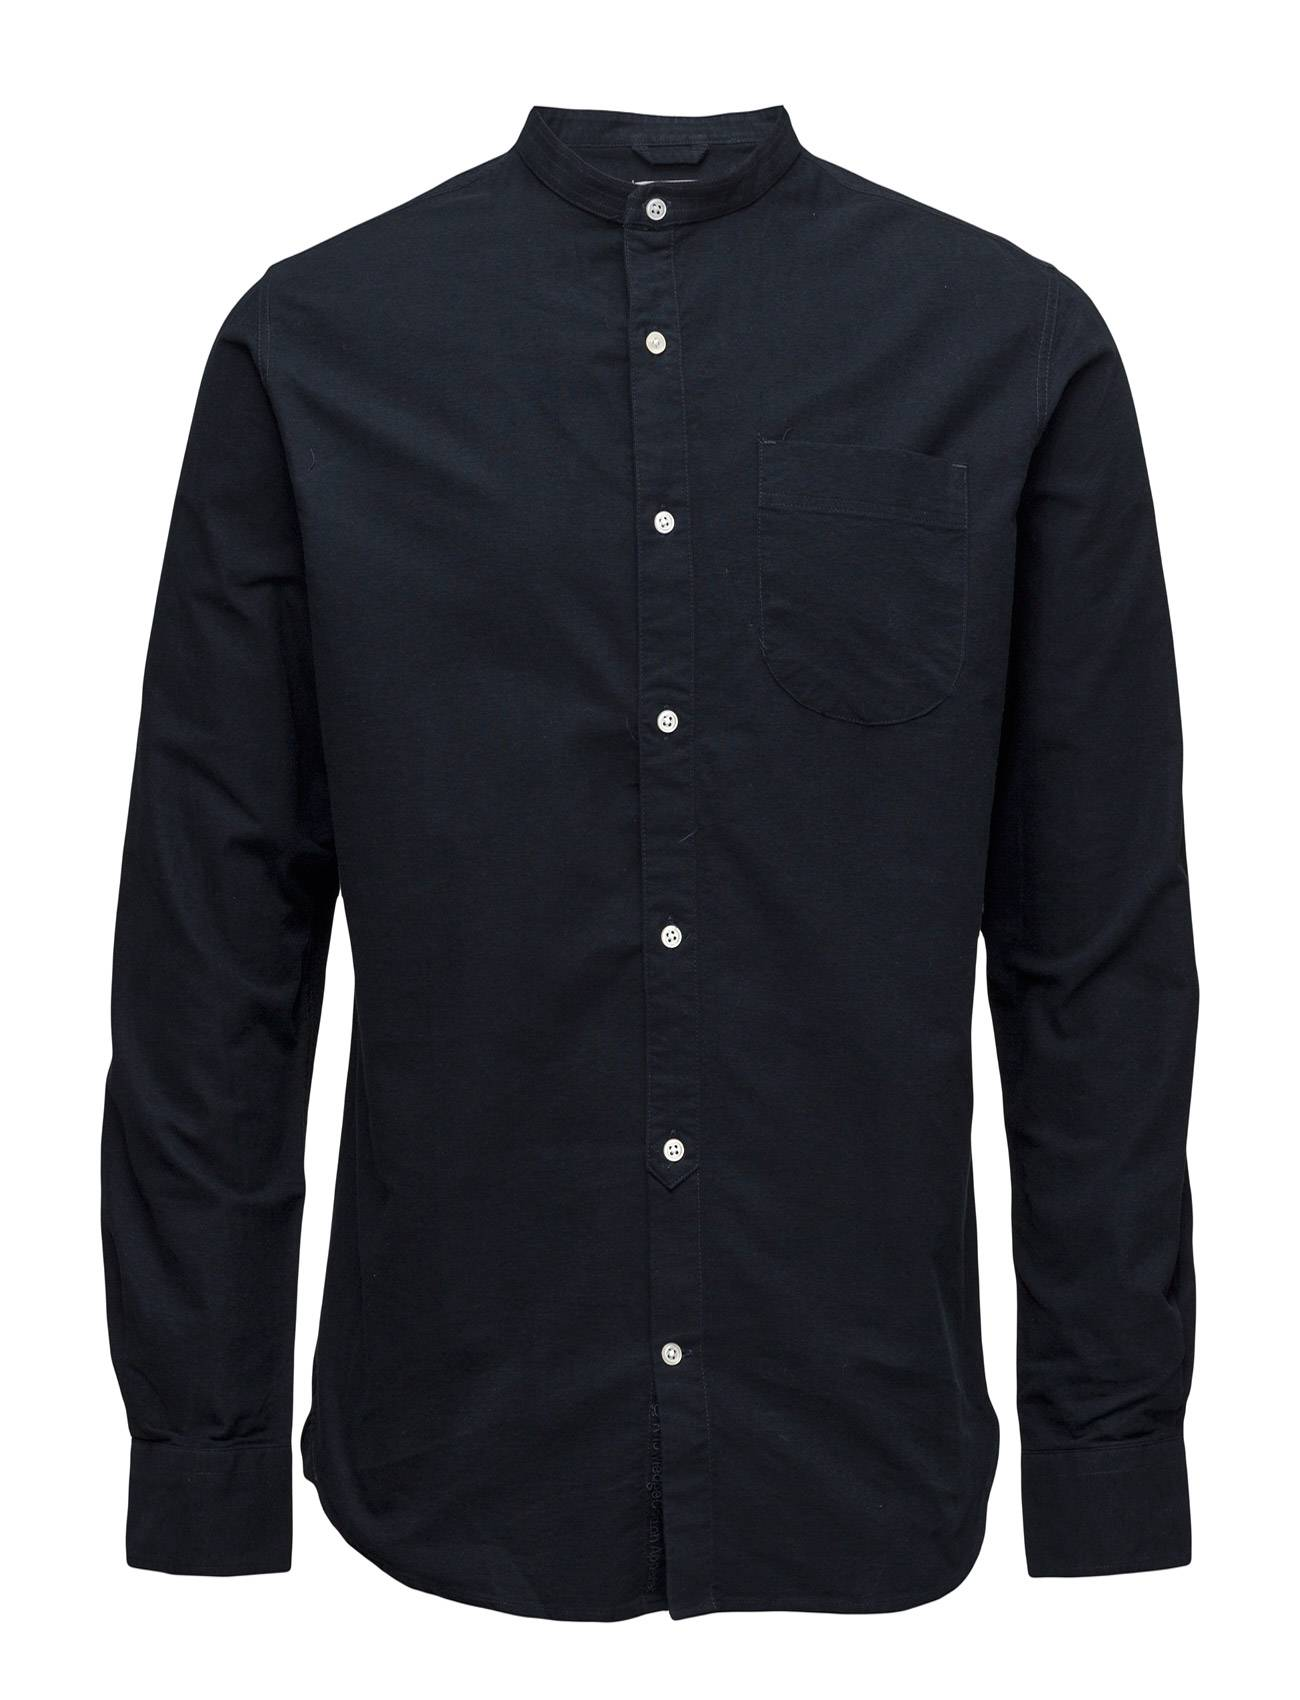 Knowledge Cotton Apparel Stand Collar Shirt - Gots